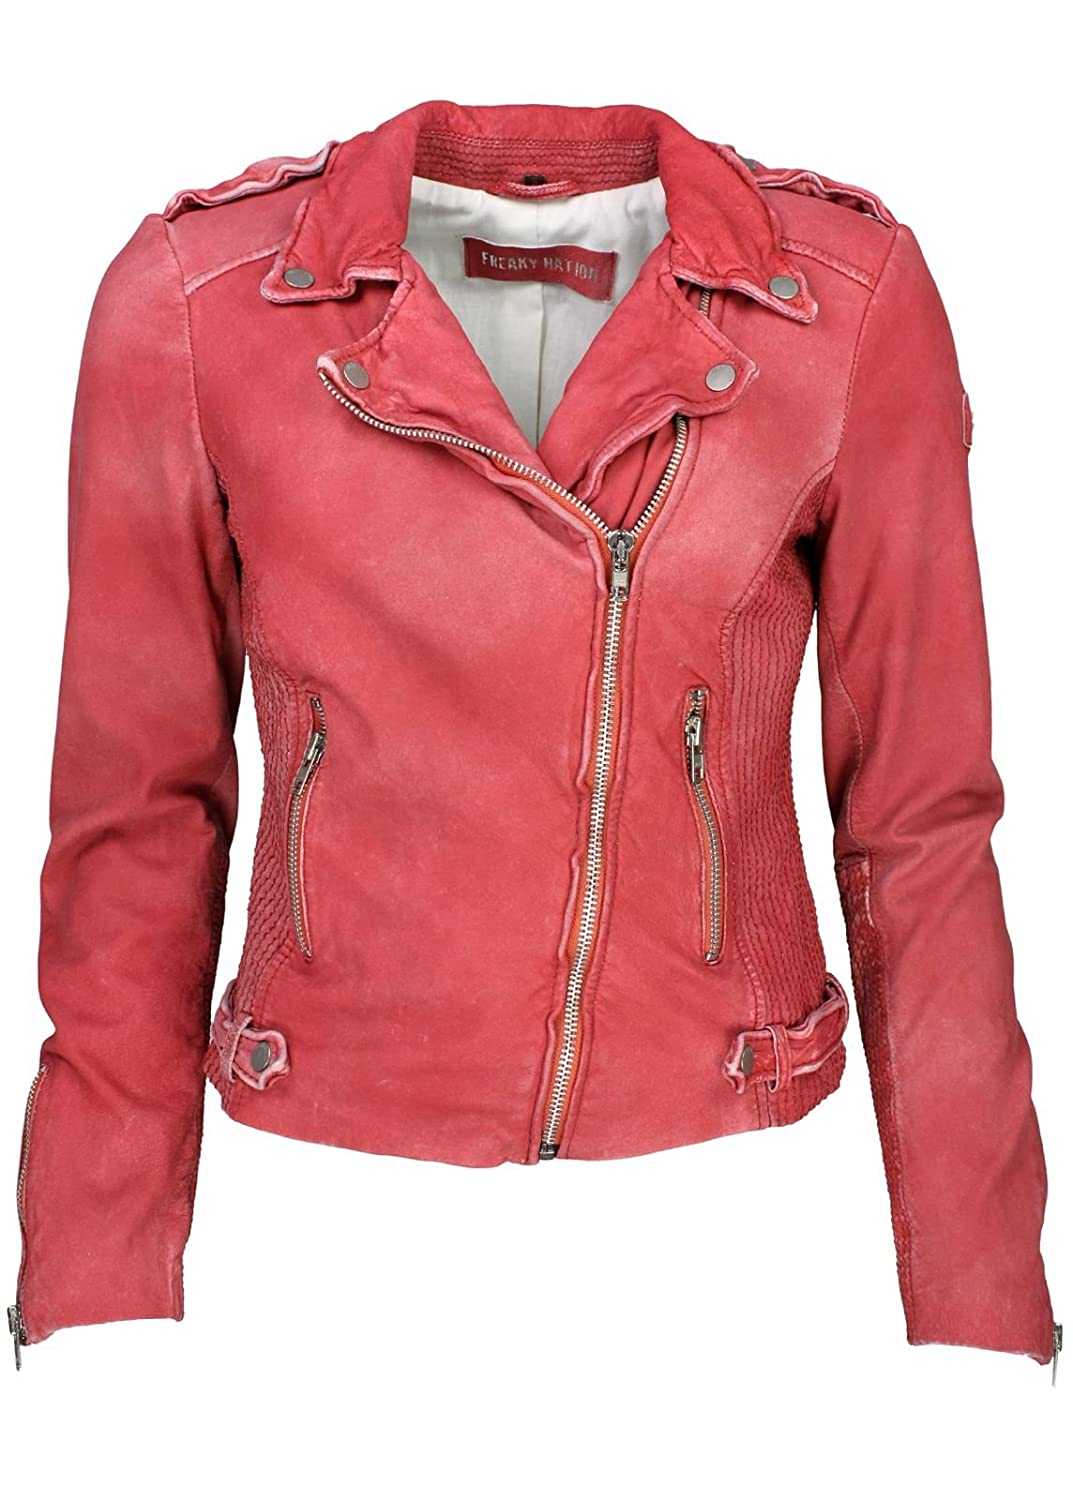 Freaky Nation Lederjacke Polly Red